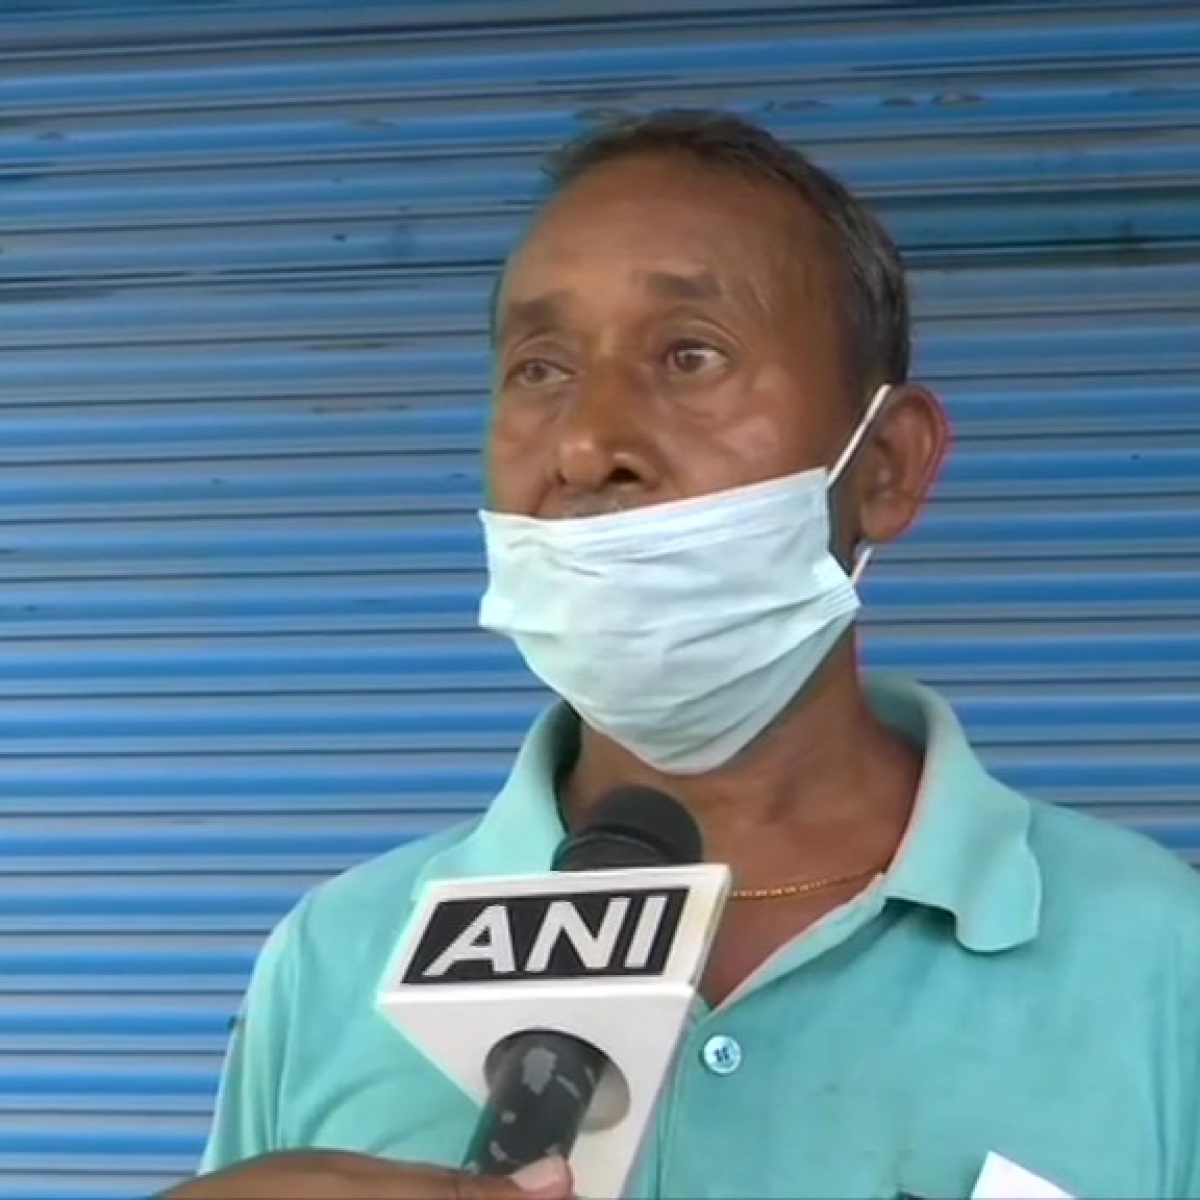 West Bengal polls: BJP polling agent alleges he was forcefully pushed out of booth by TMC members